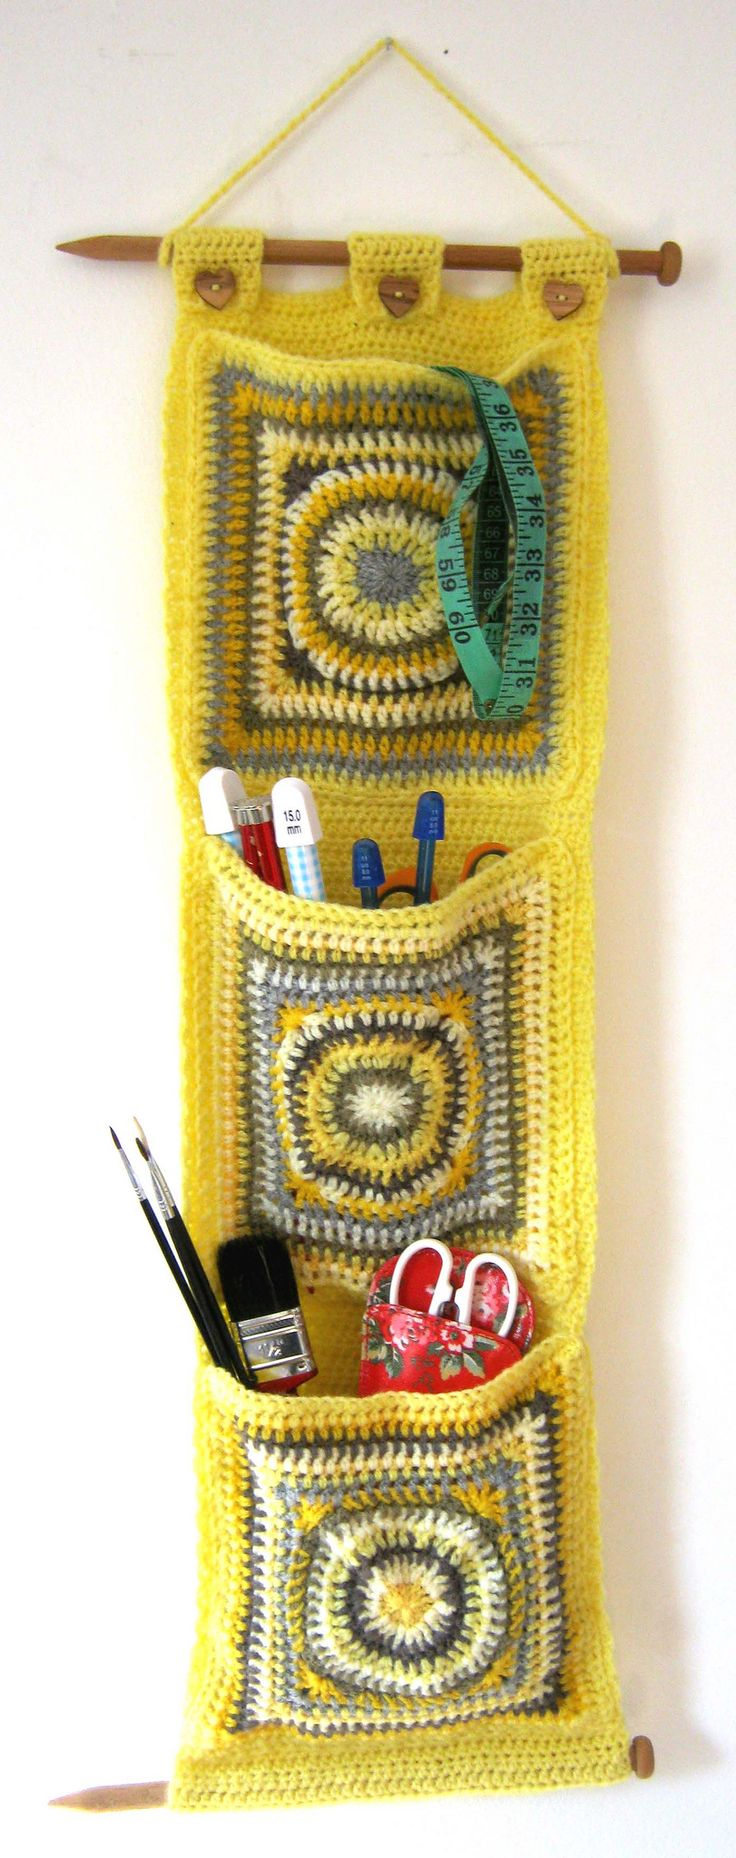 Crochet Wall Pockets | Flickr - Photo Sharing!